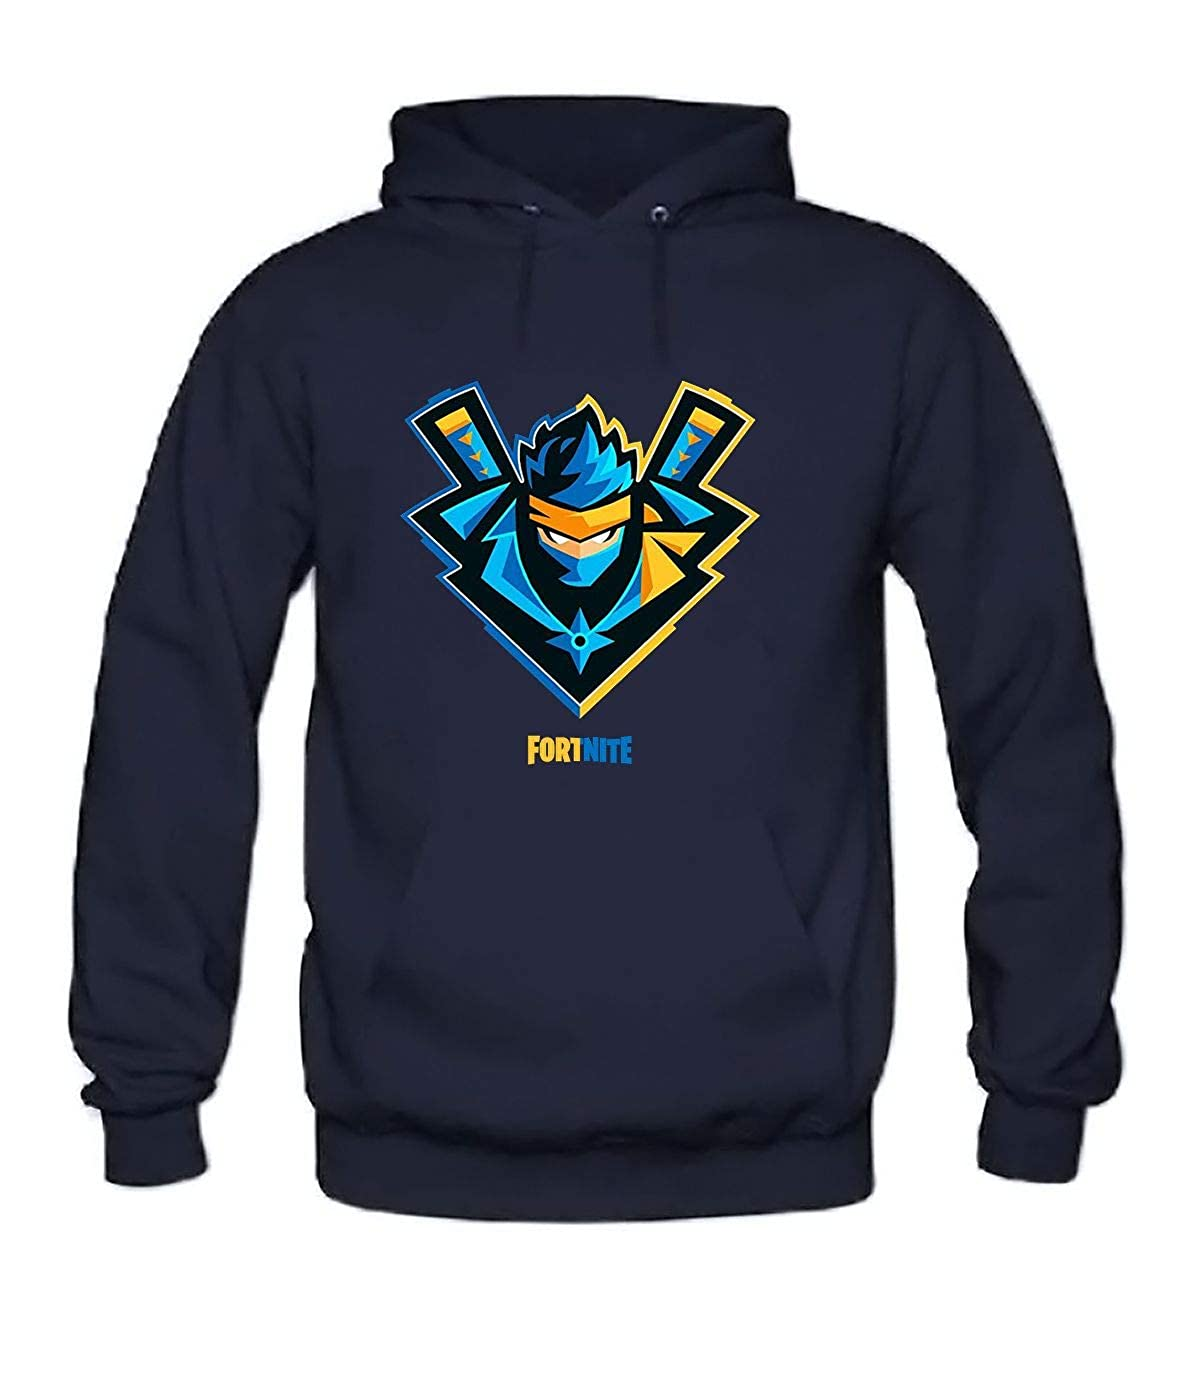 Amazon.com: Fortnite Ninja Mens Hoodie darkBlue XL: Clothing